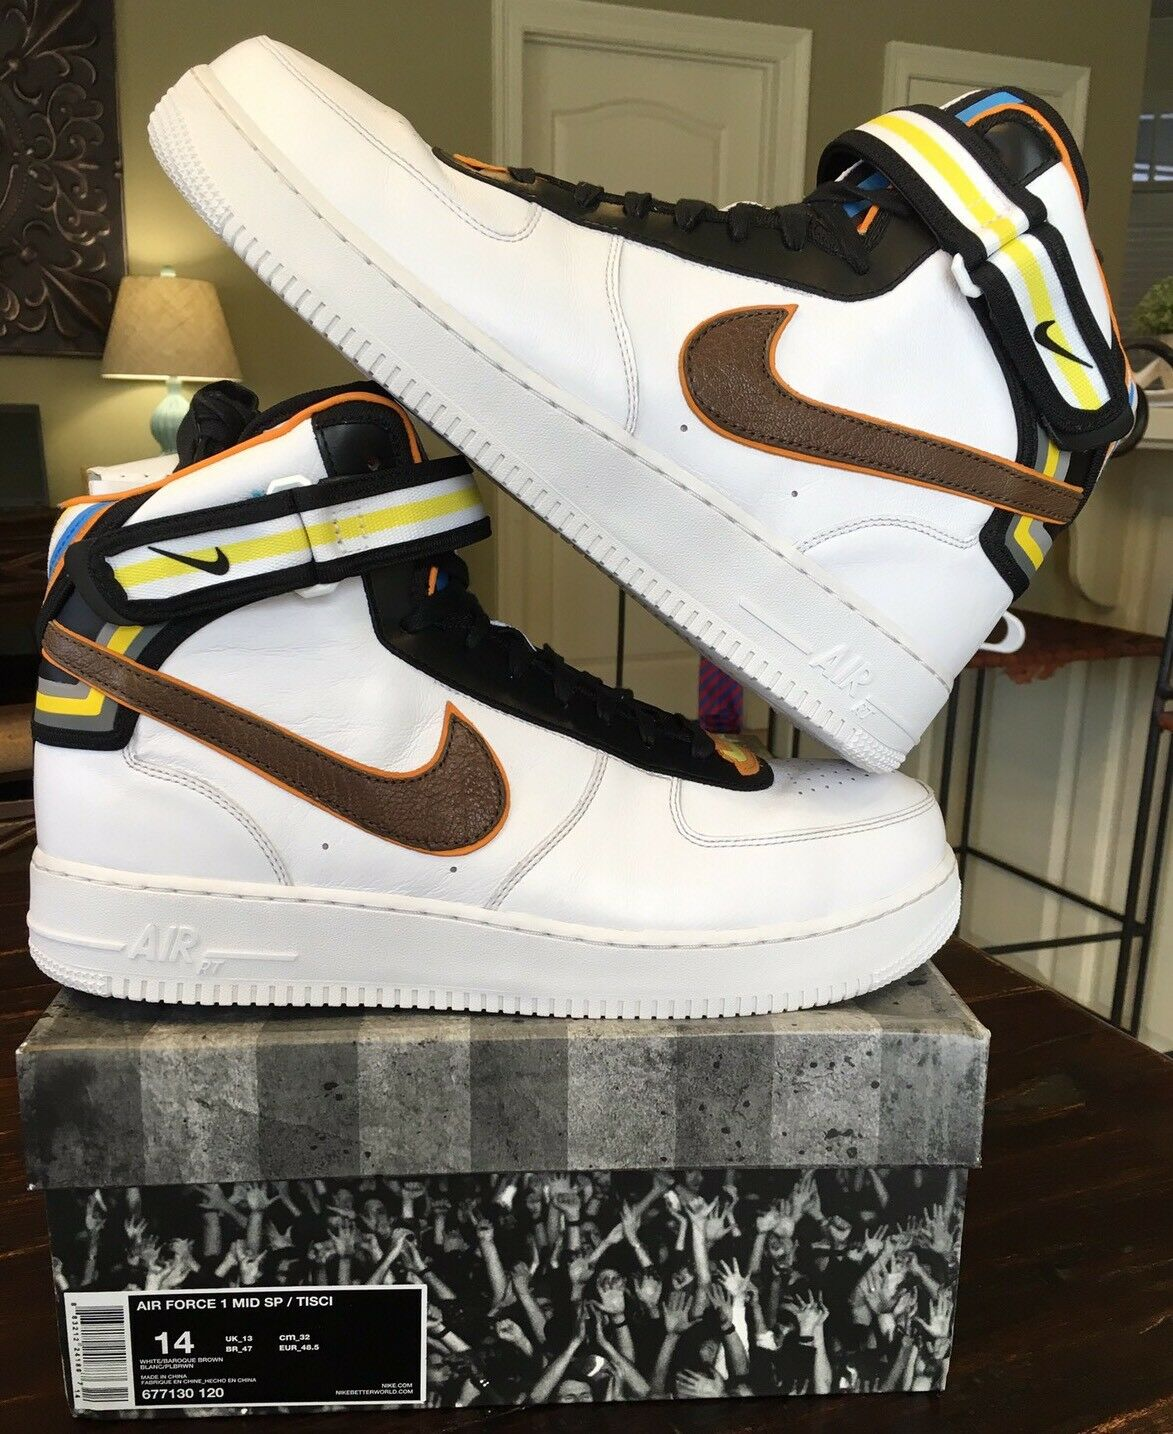 Nike Air Force 1 Mid White Riccardo Tisci Givenchy SP Yeezy Lot Jordan One 2 3 4